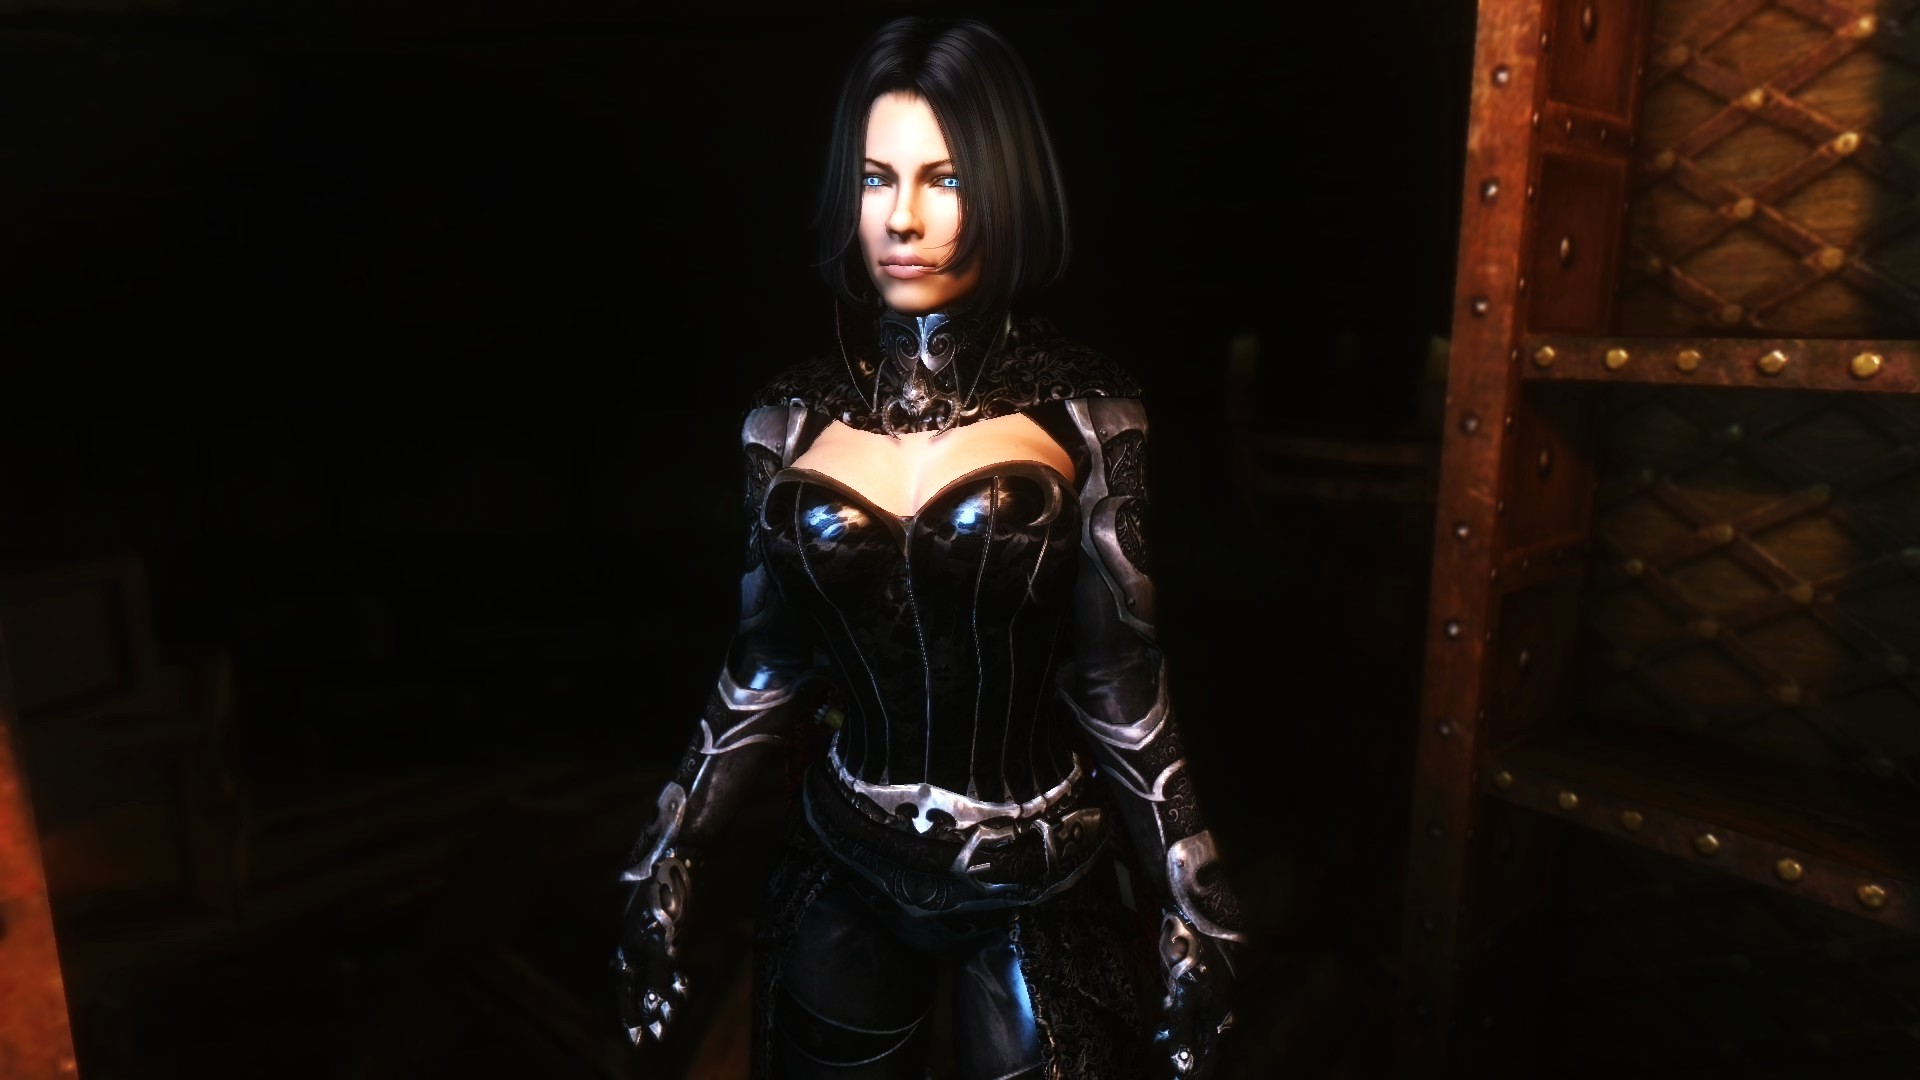 Selene From Underworld 3pointo Dawnguard Edition At Skyrim Nexus